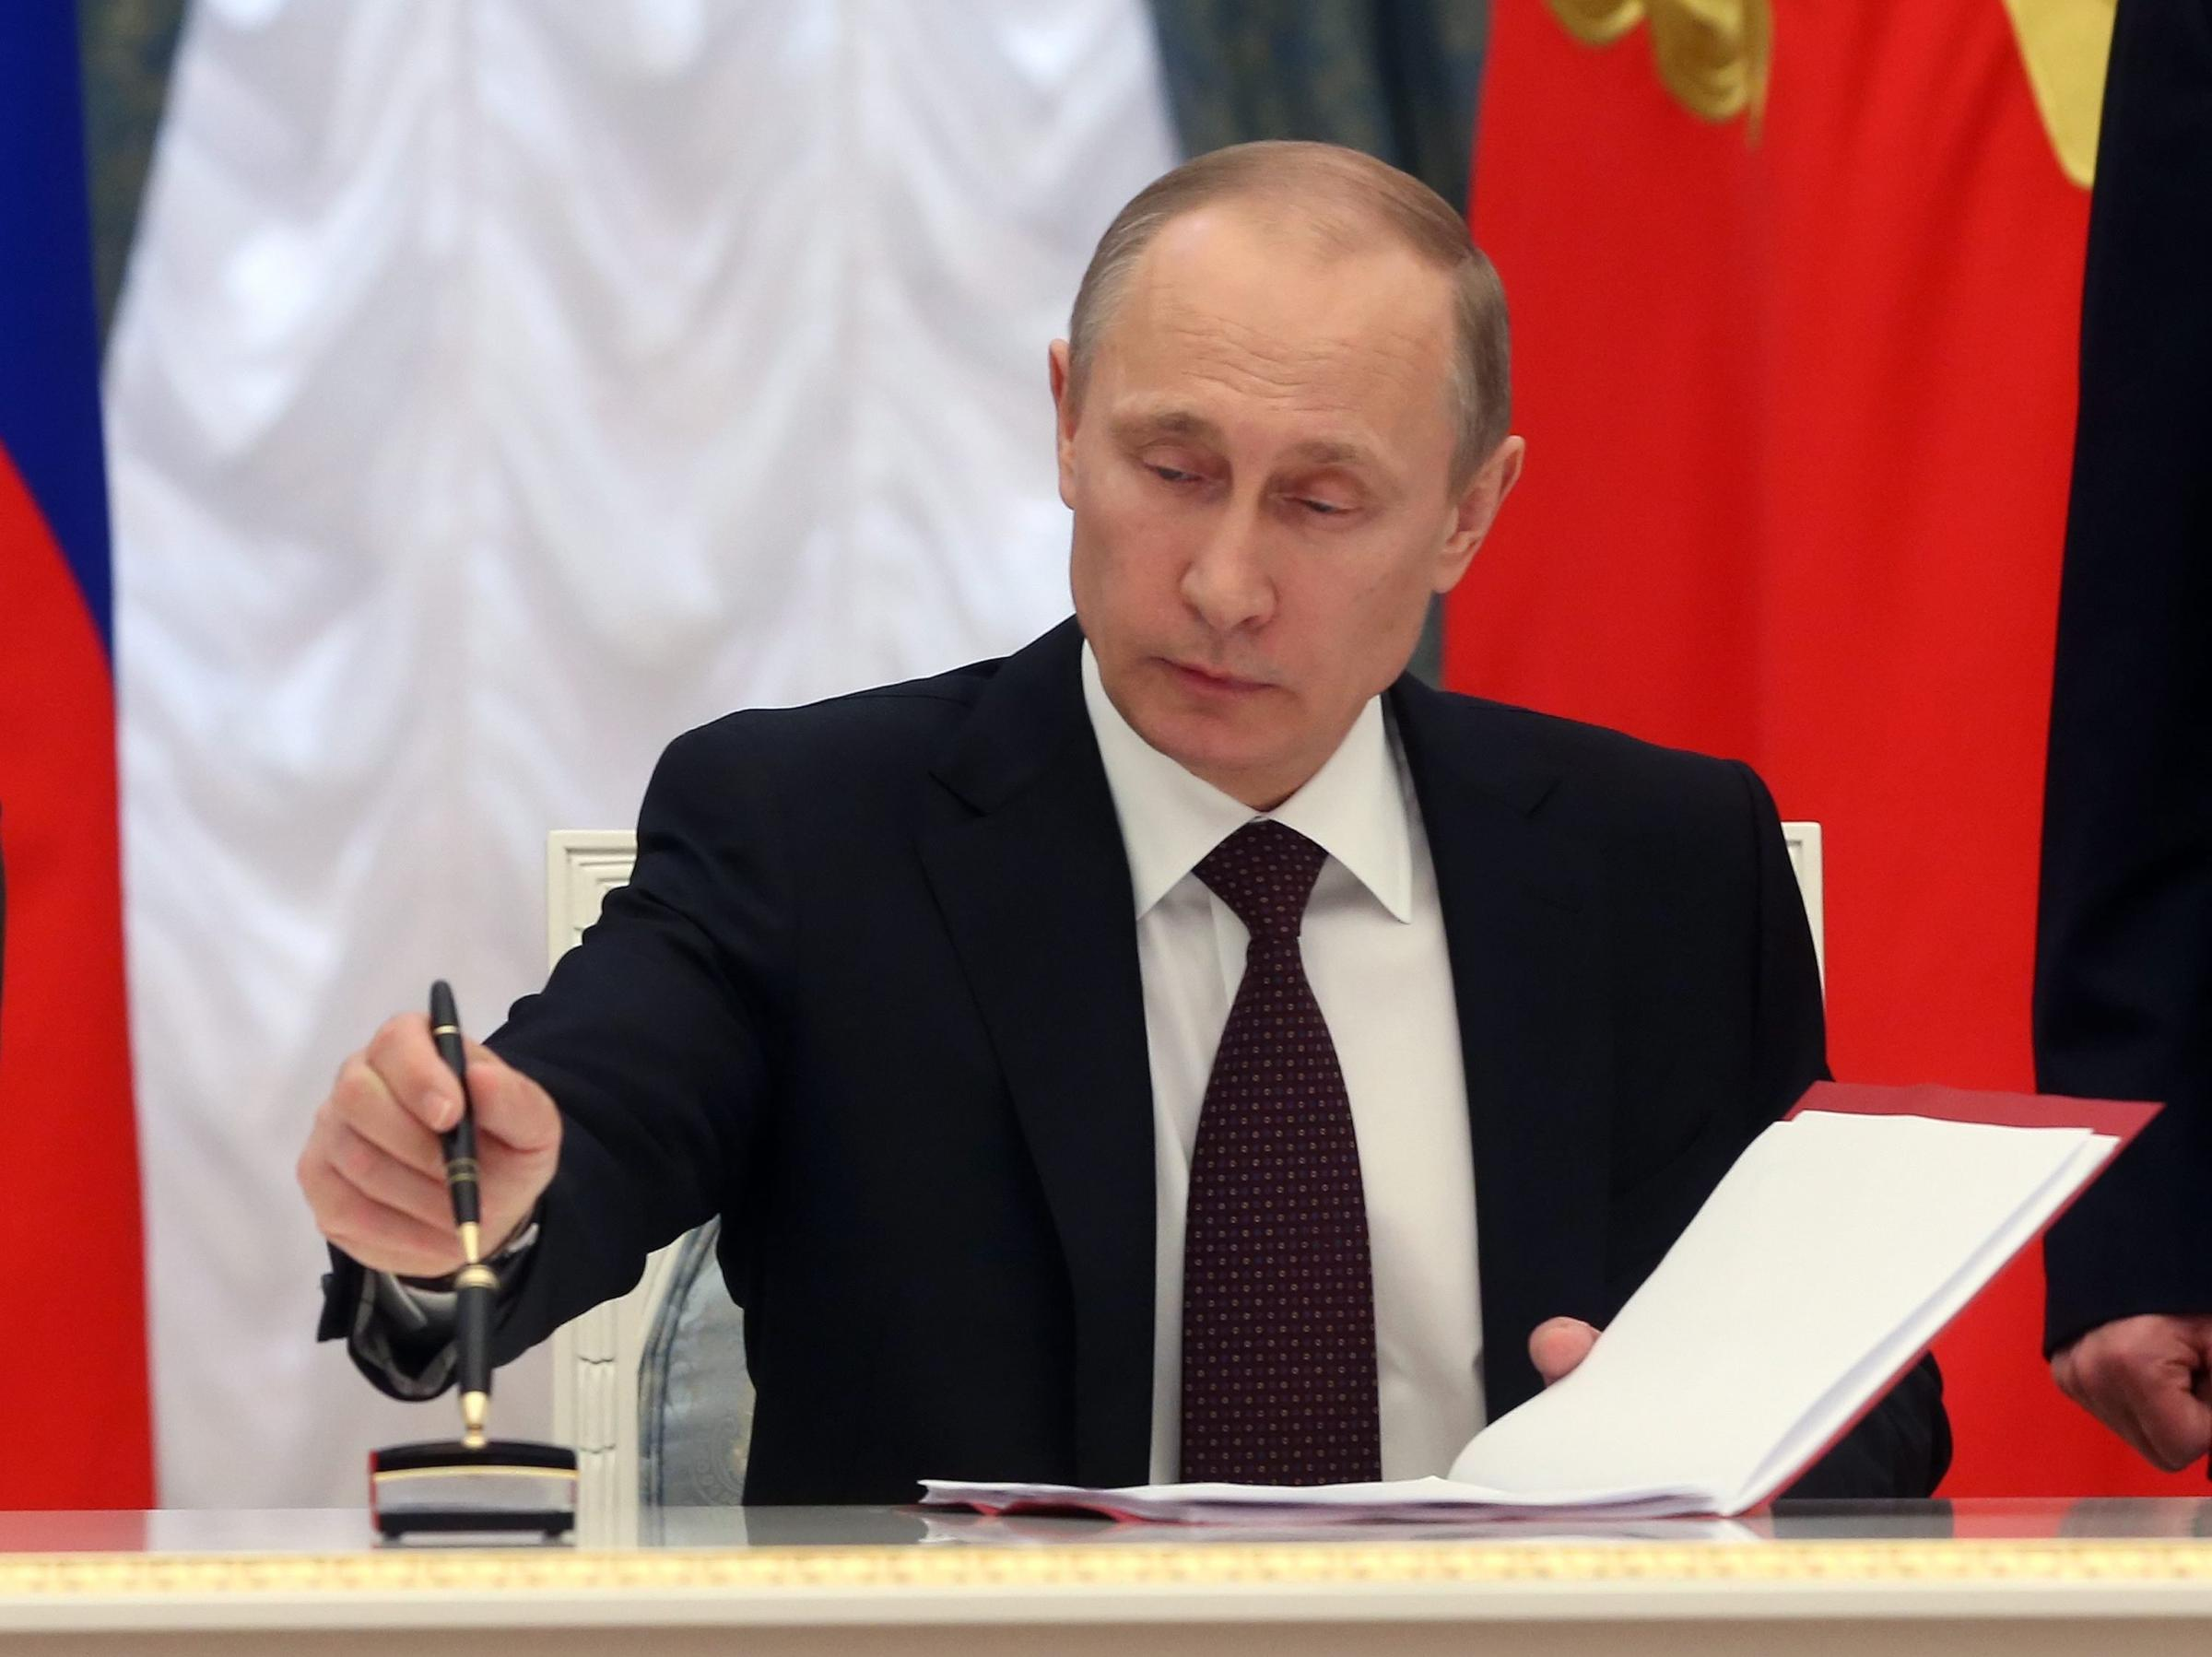 Former White House Official: Putin Wants 'New Russian Empire